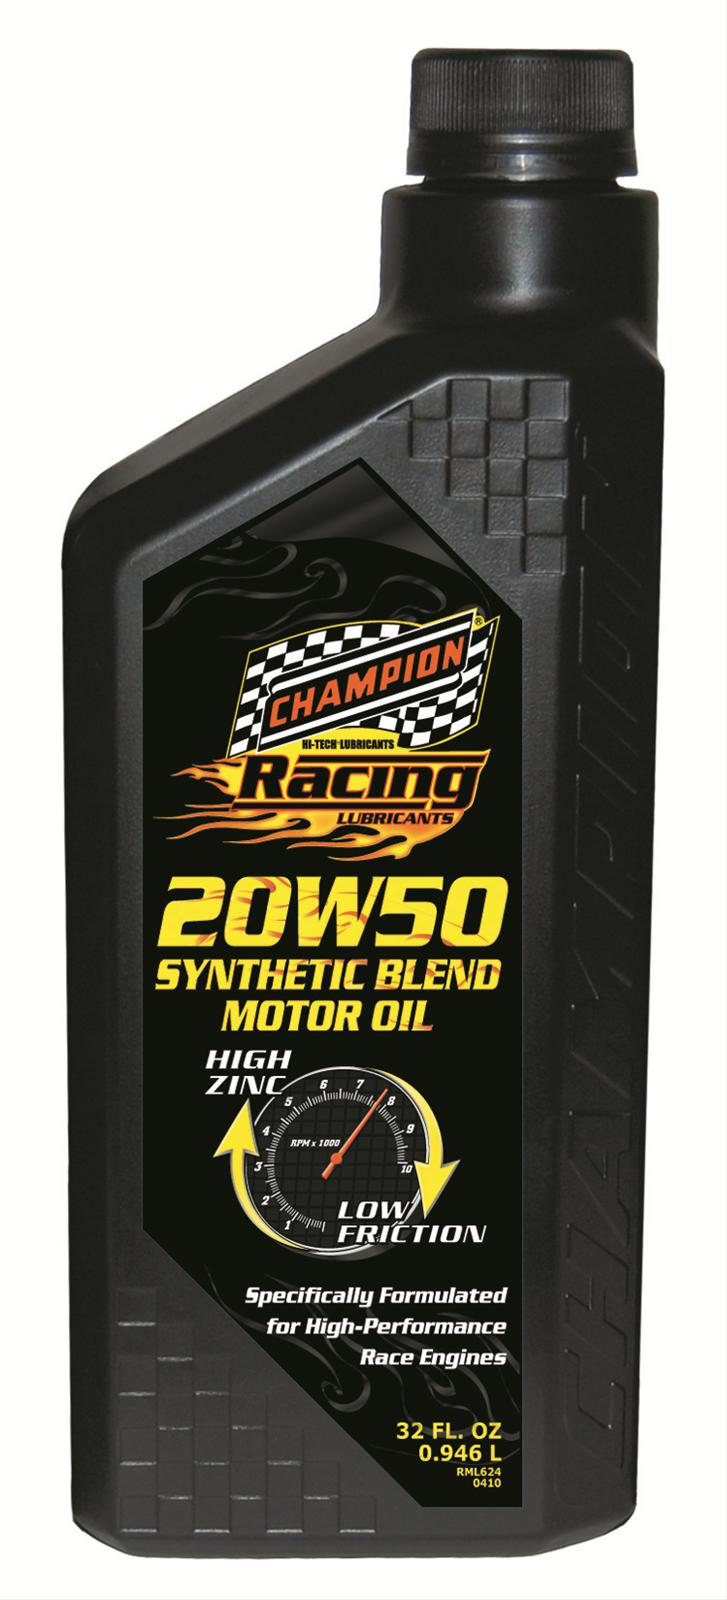 Champion Brands Motor Oil Racing Semi Synthetic 20w50 Zddp